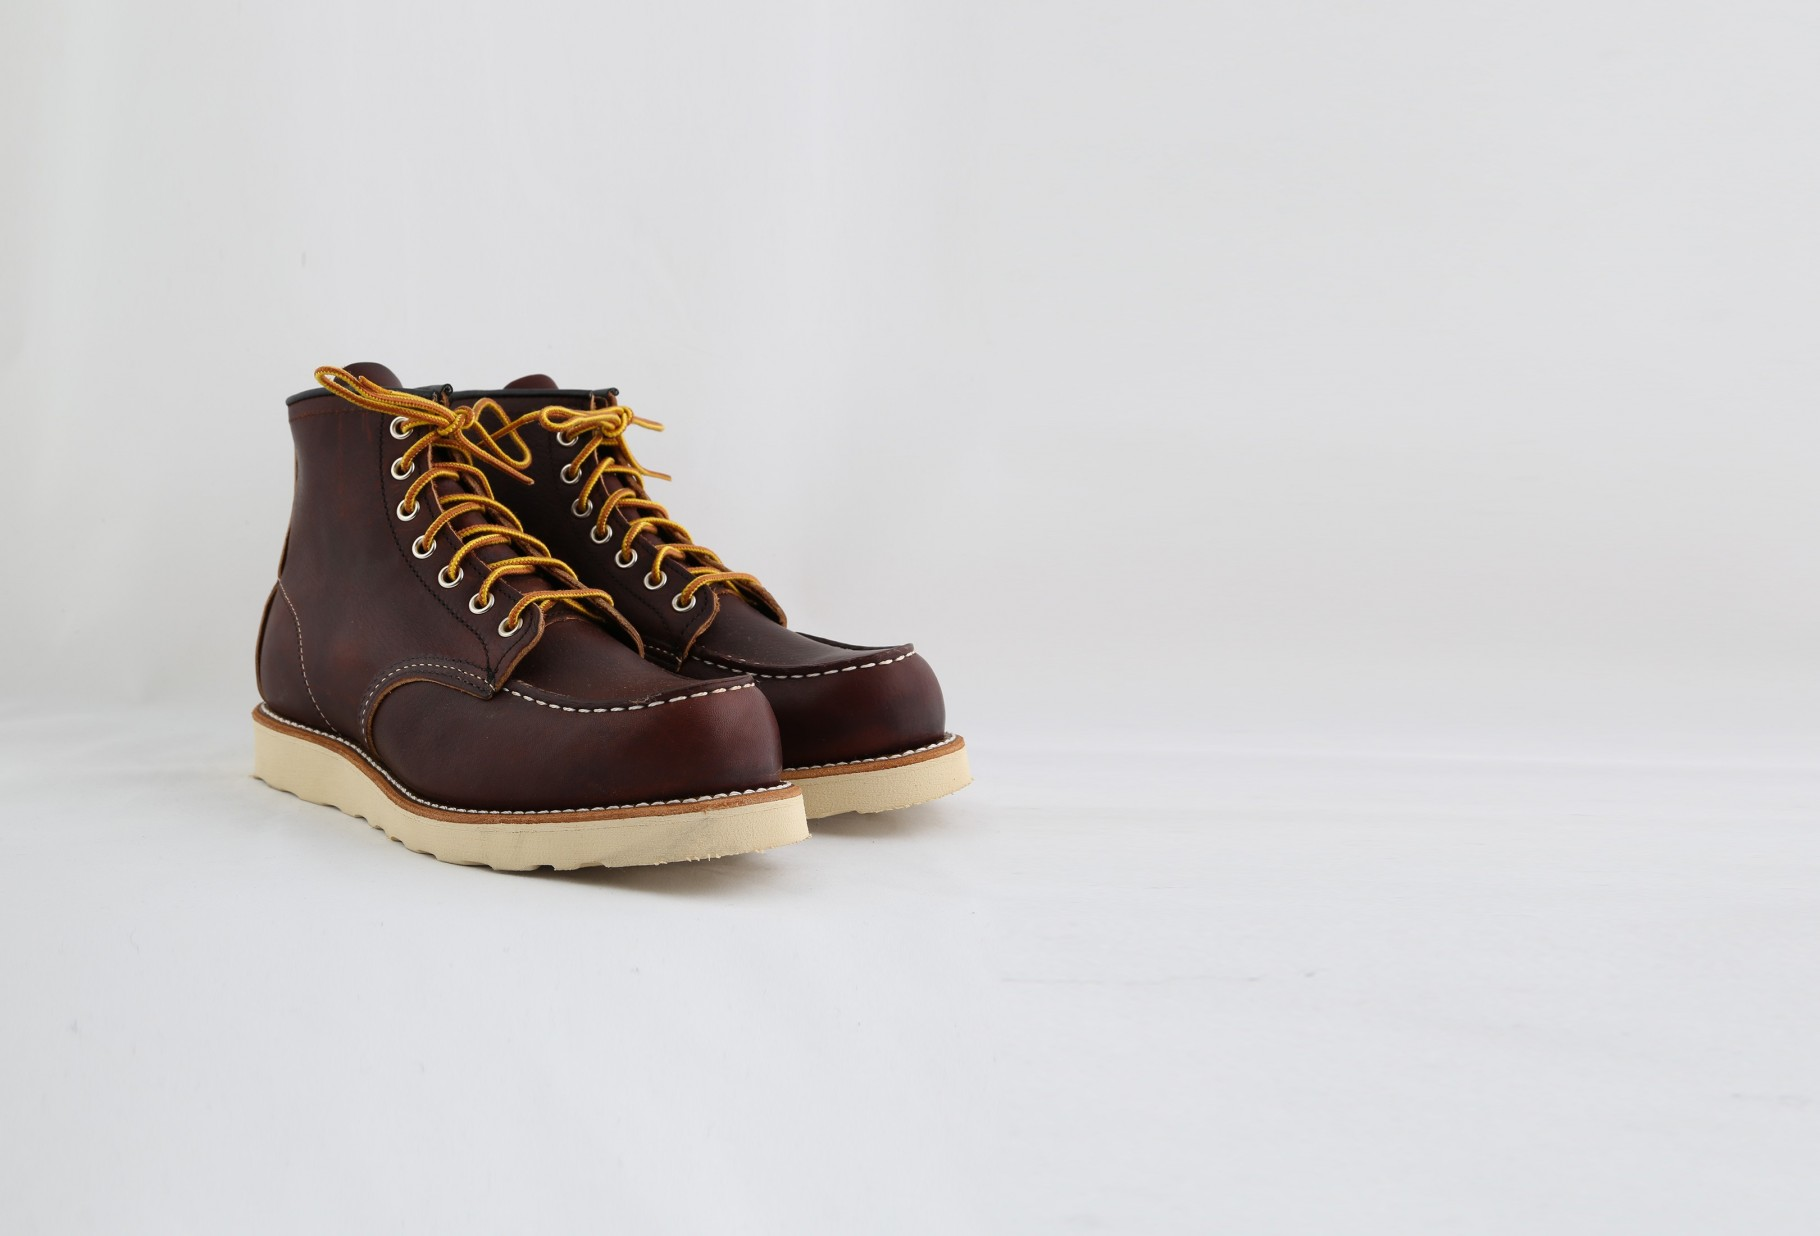 RED WING / Moc toe 6'' style no.8138 Briar